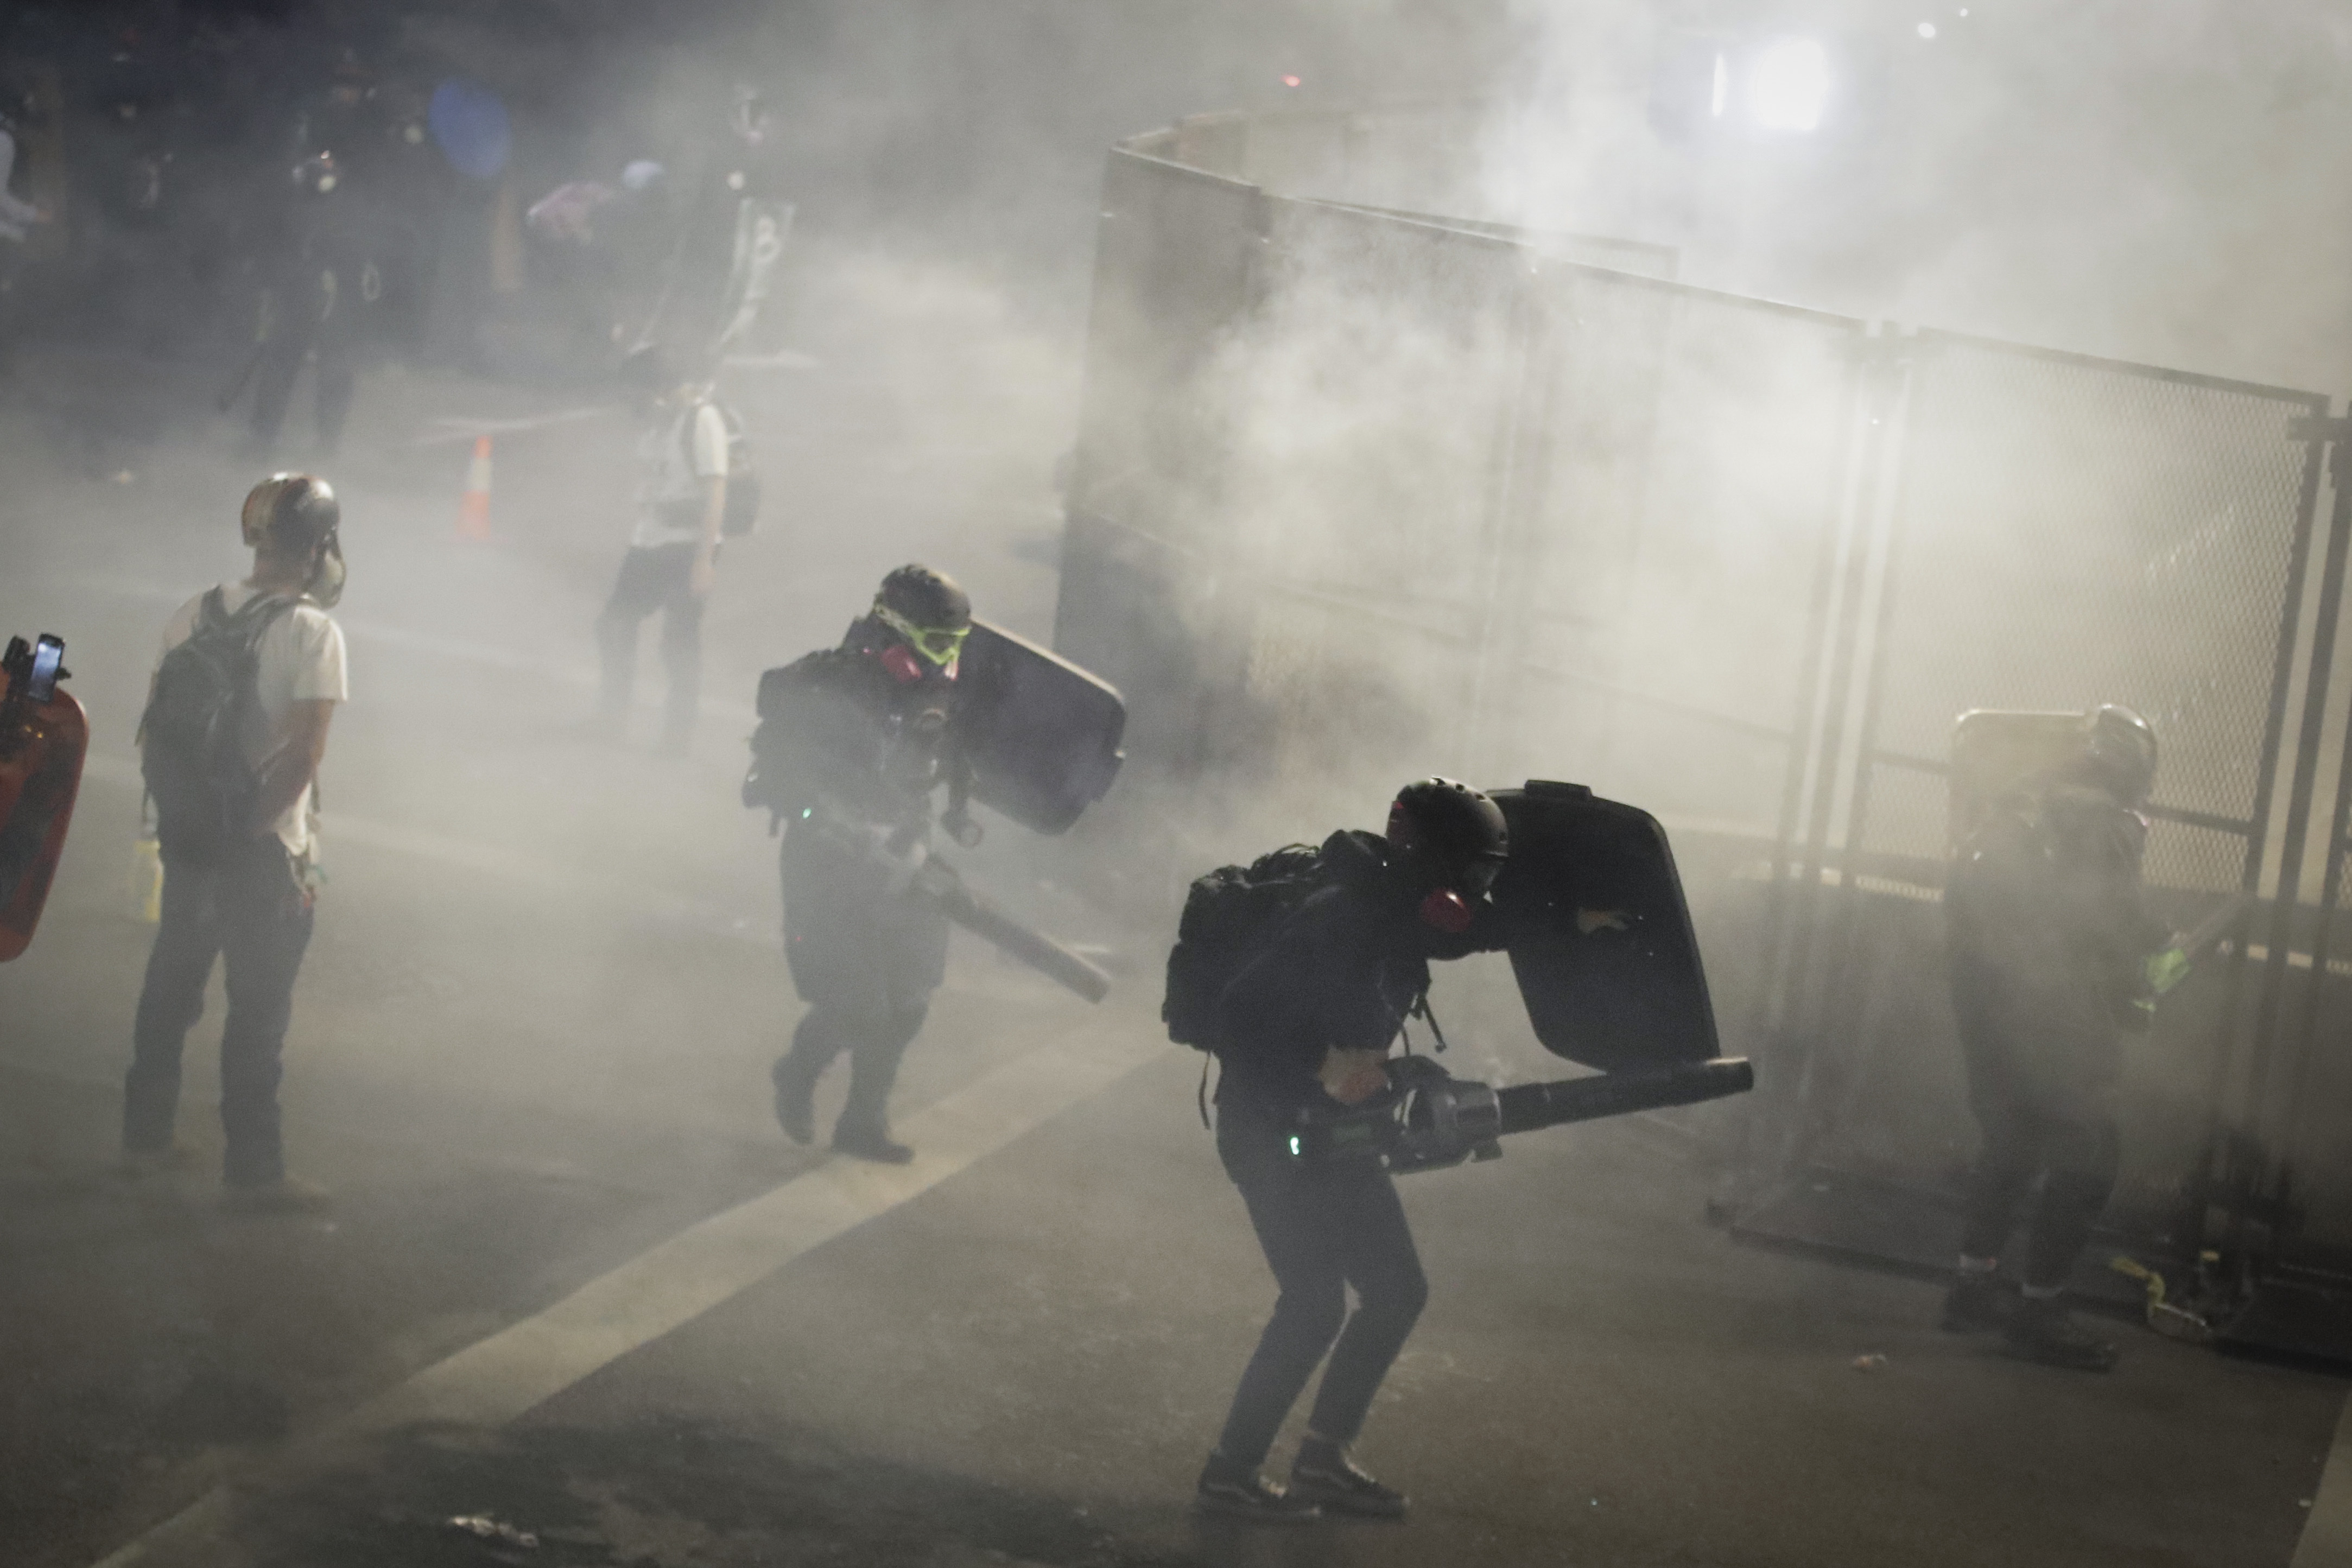 Demonstrators use leaf blowers to try to blow back tear gas launched by federal officers during a Black Lives Matter protest at the Mark O. Hatfield United States Courthouse Sunday, July 26, 2020, in Portland, Ore. (AP Photo/Marcio Jose Sanchez)